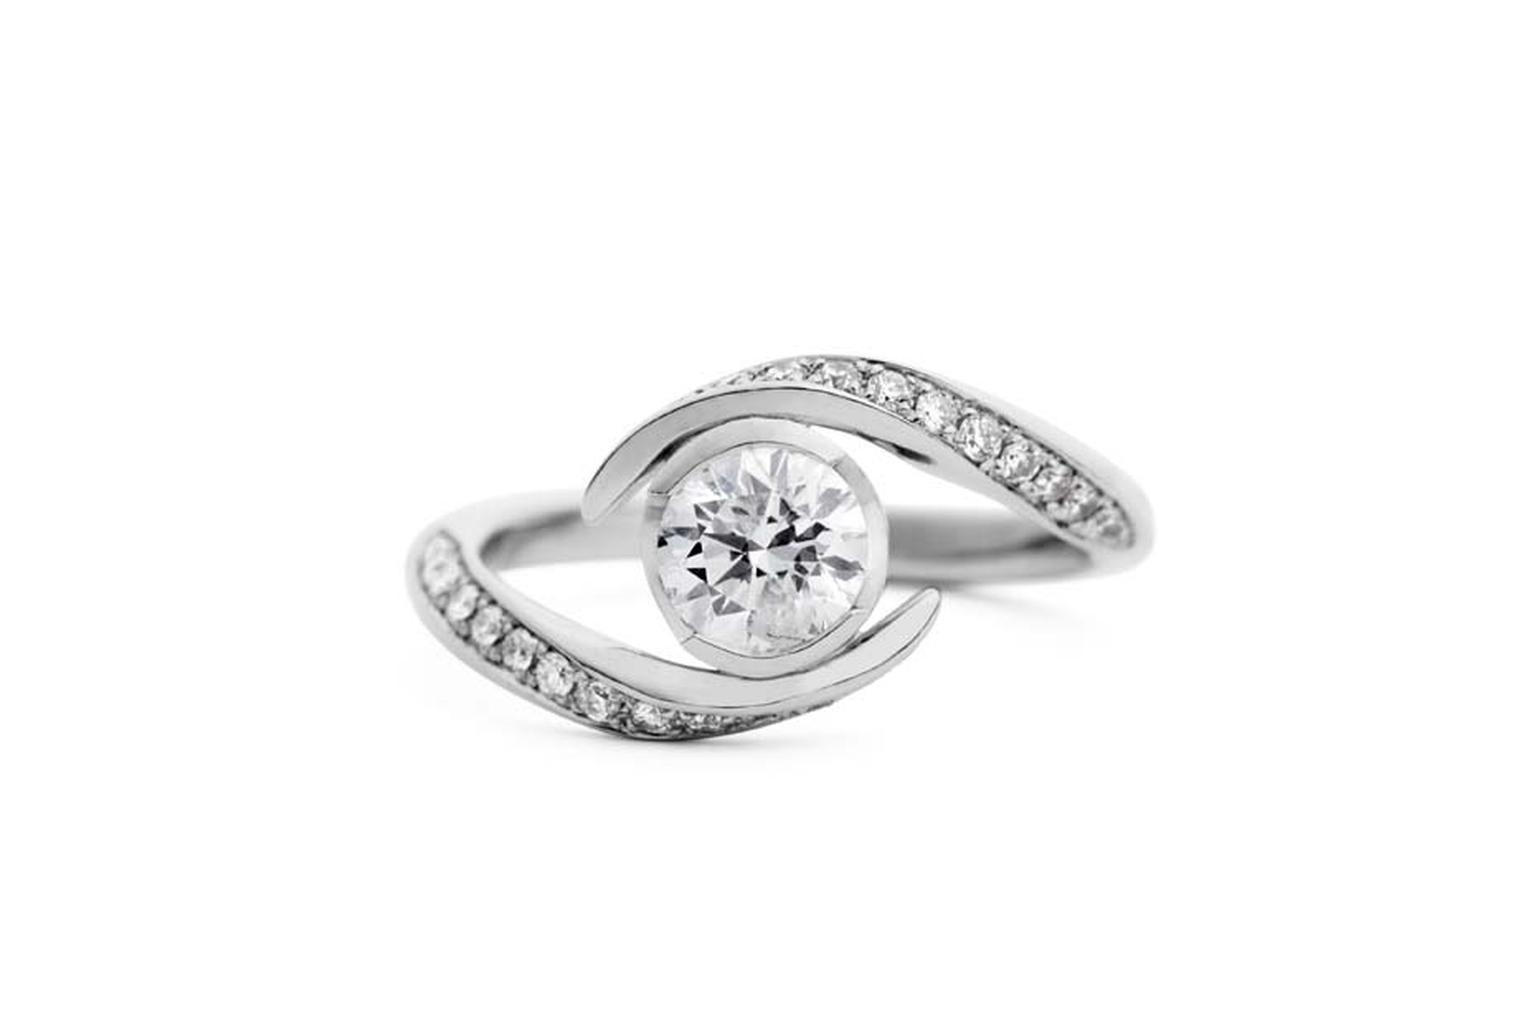 Jessica Poole Hexagon solitaire diamond engagement ring in brushed platinum with white diamonds.